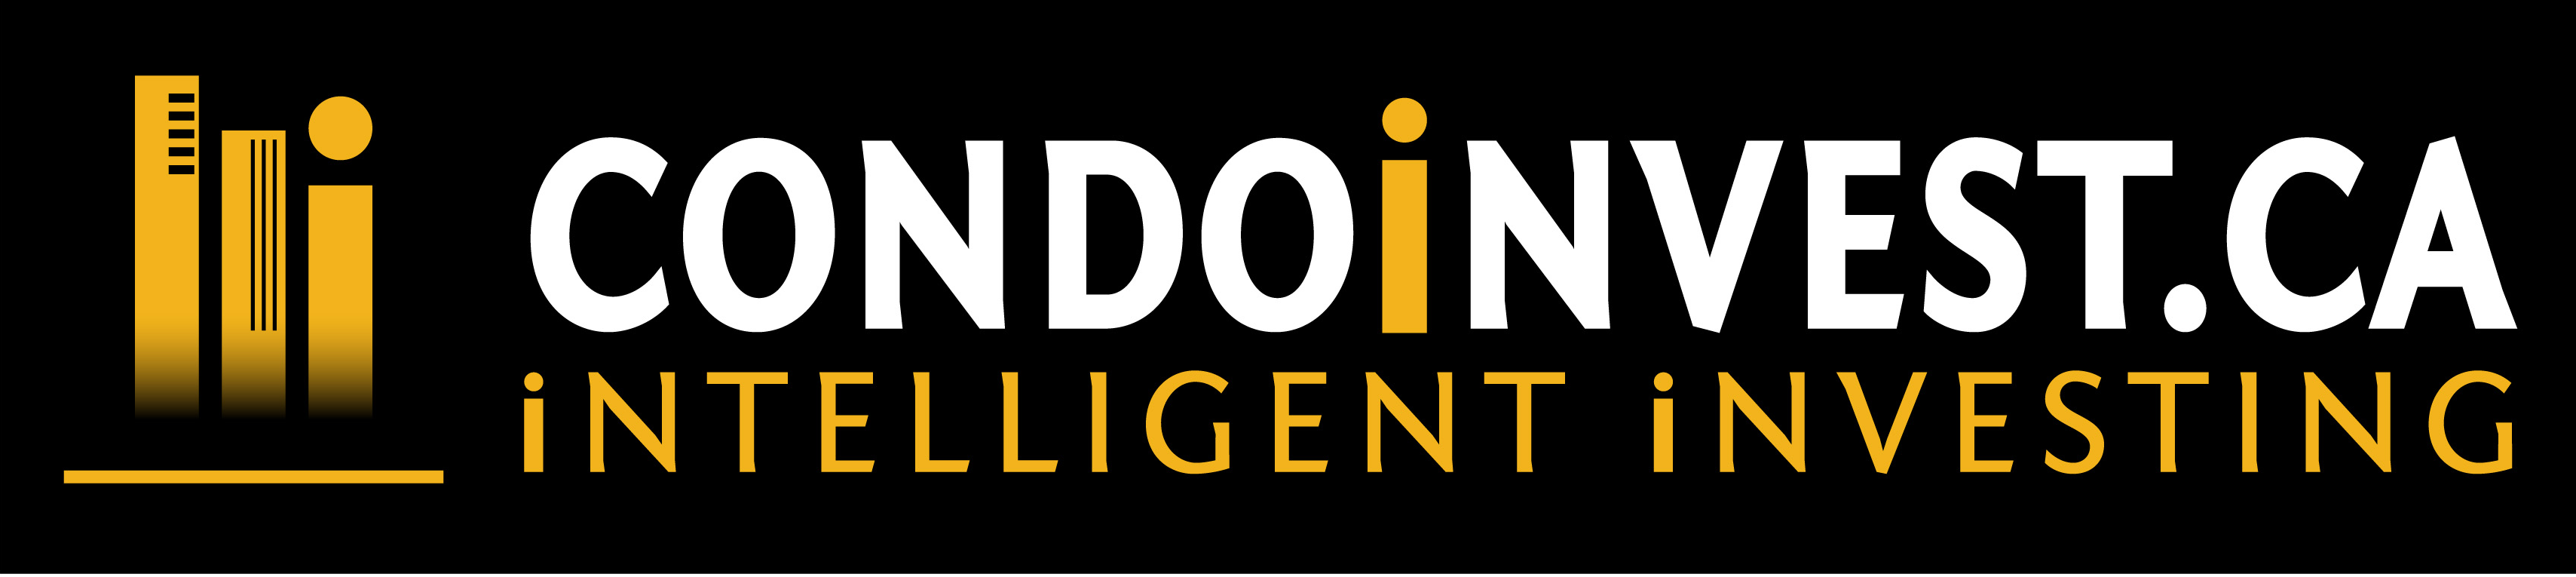 Condoinvest.ca – Intelligent Investing